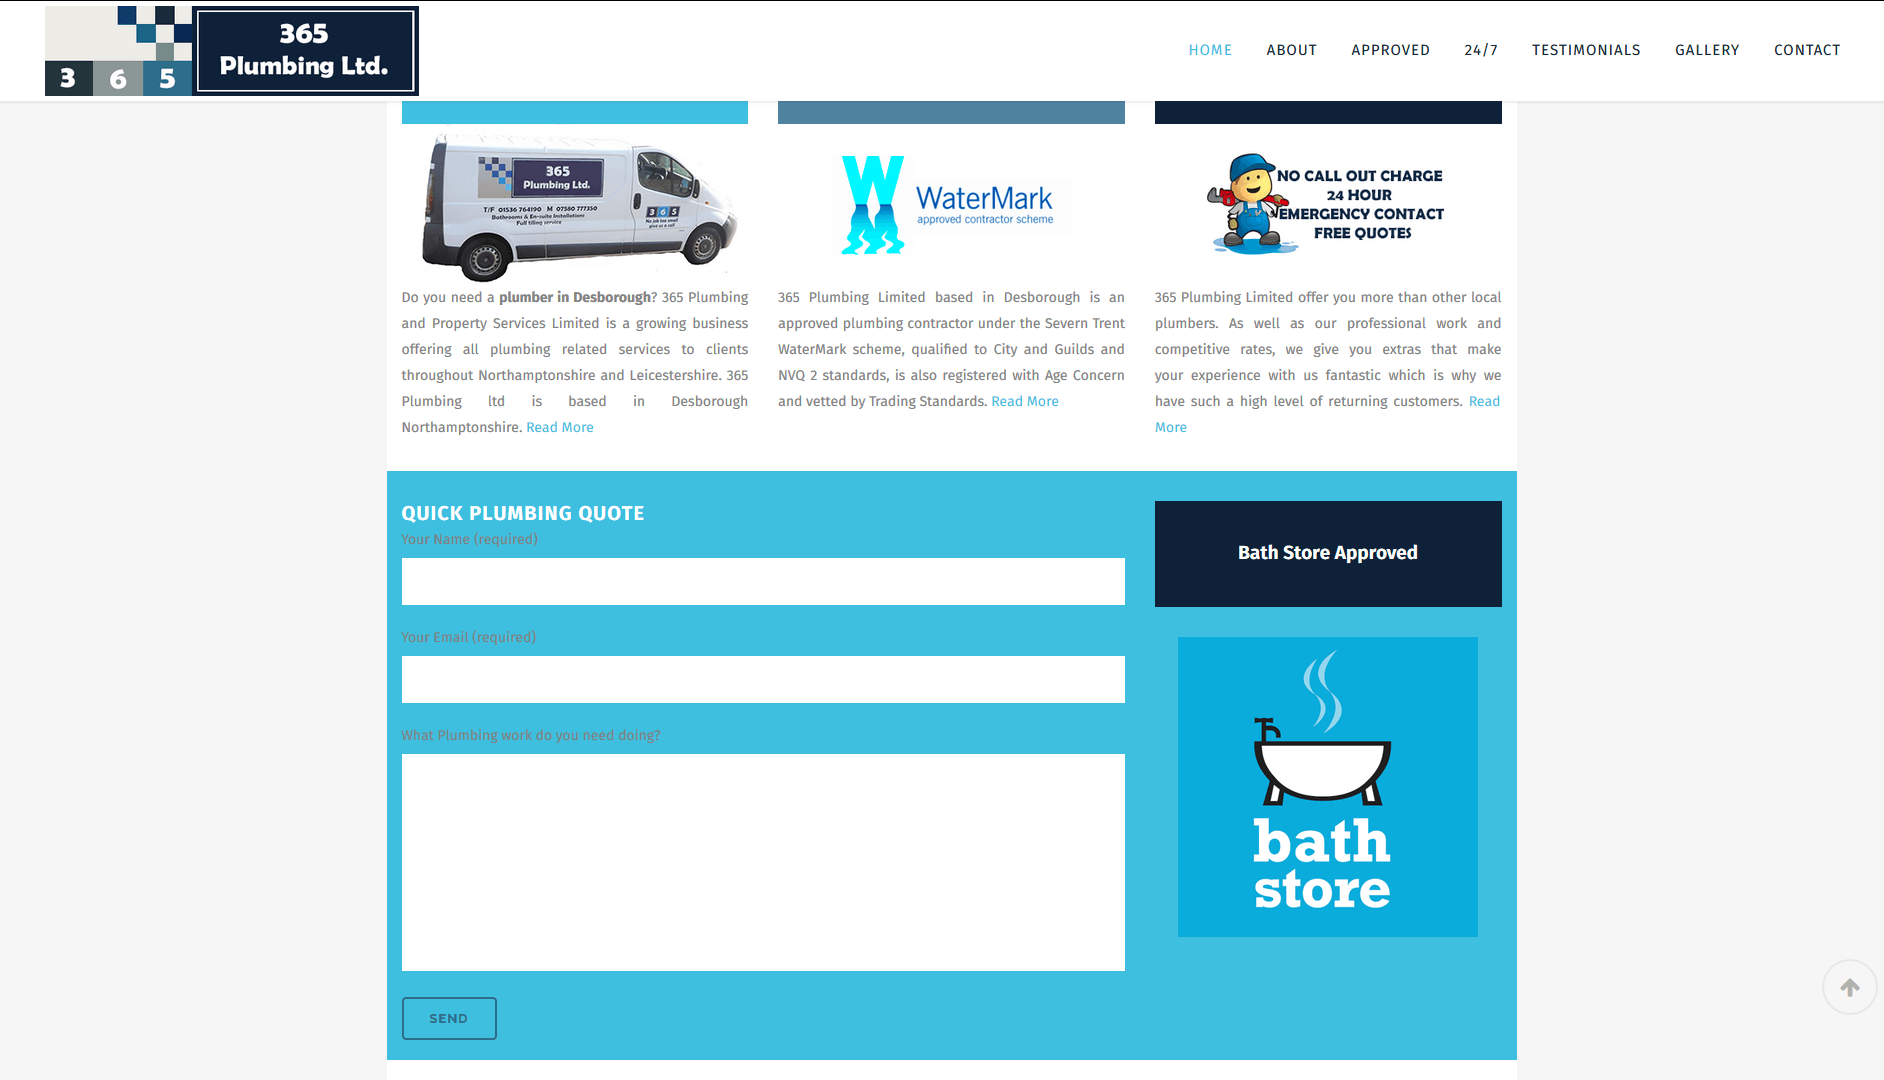 Business Branding and Website 365 Plumbing LTD